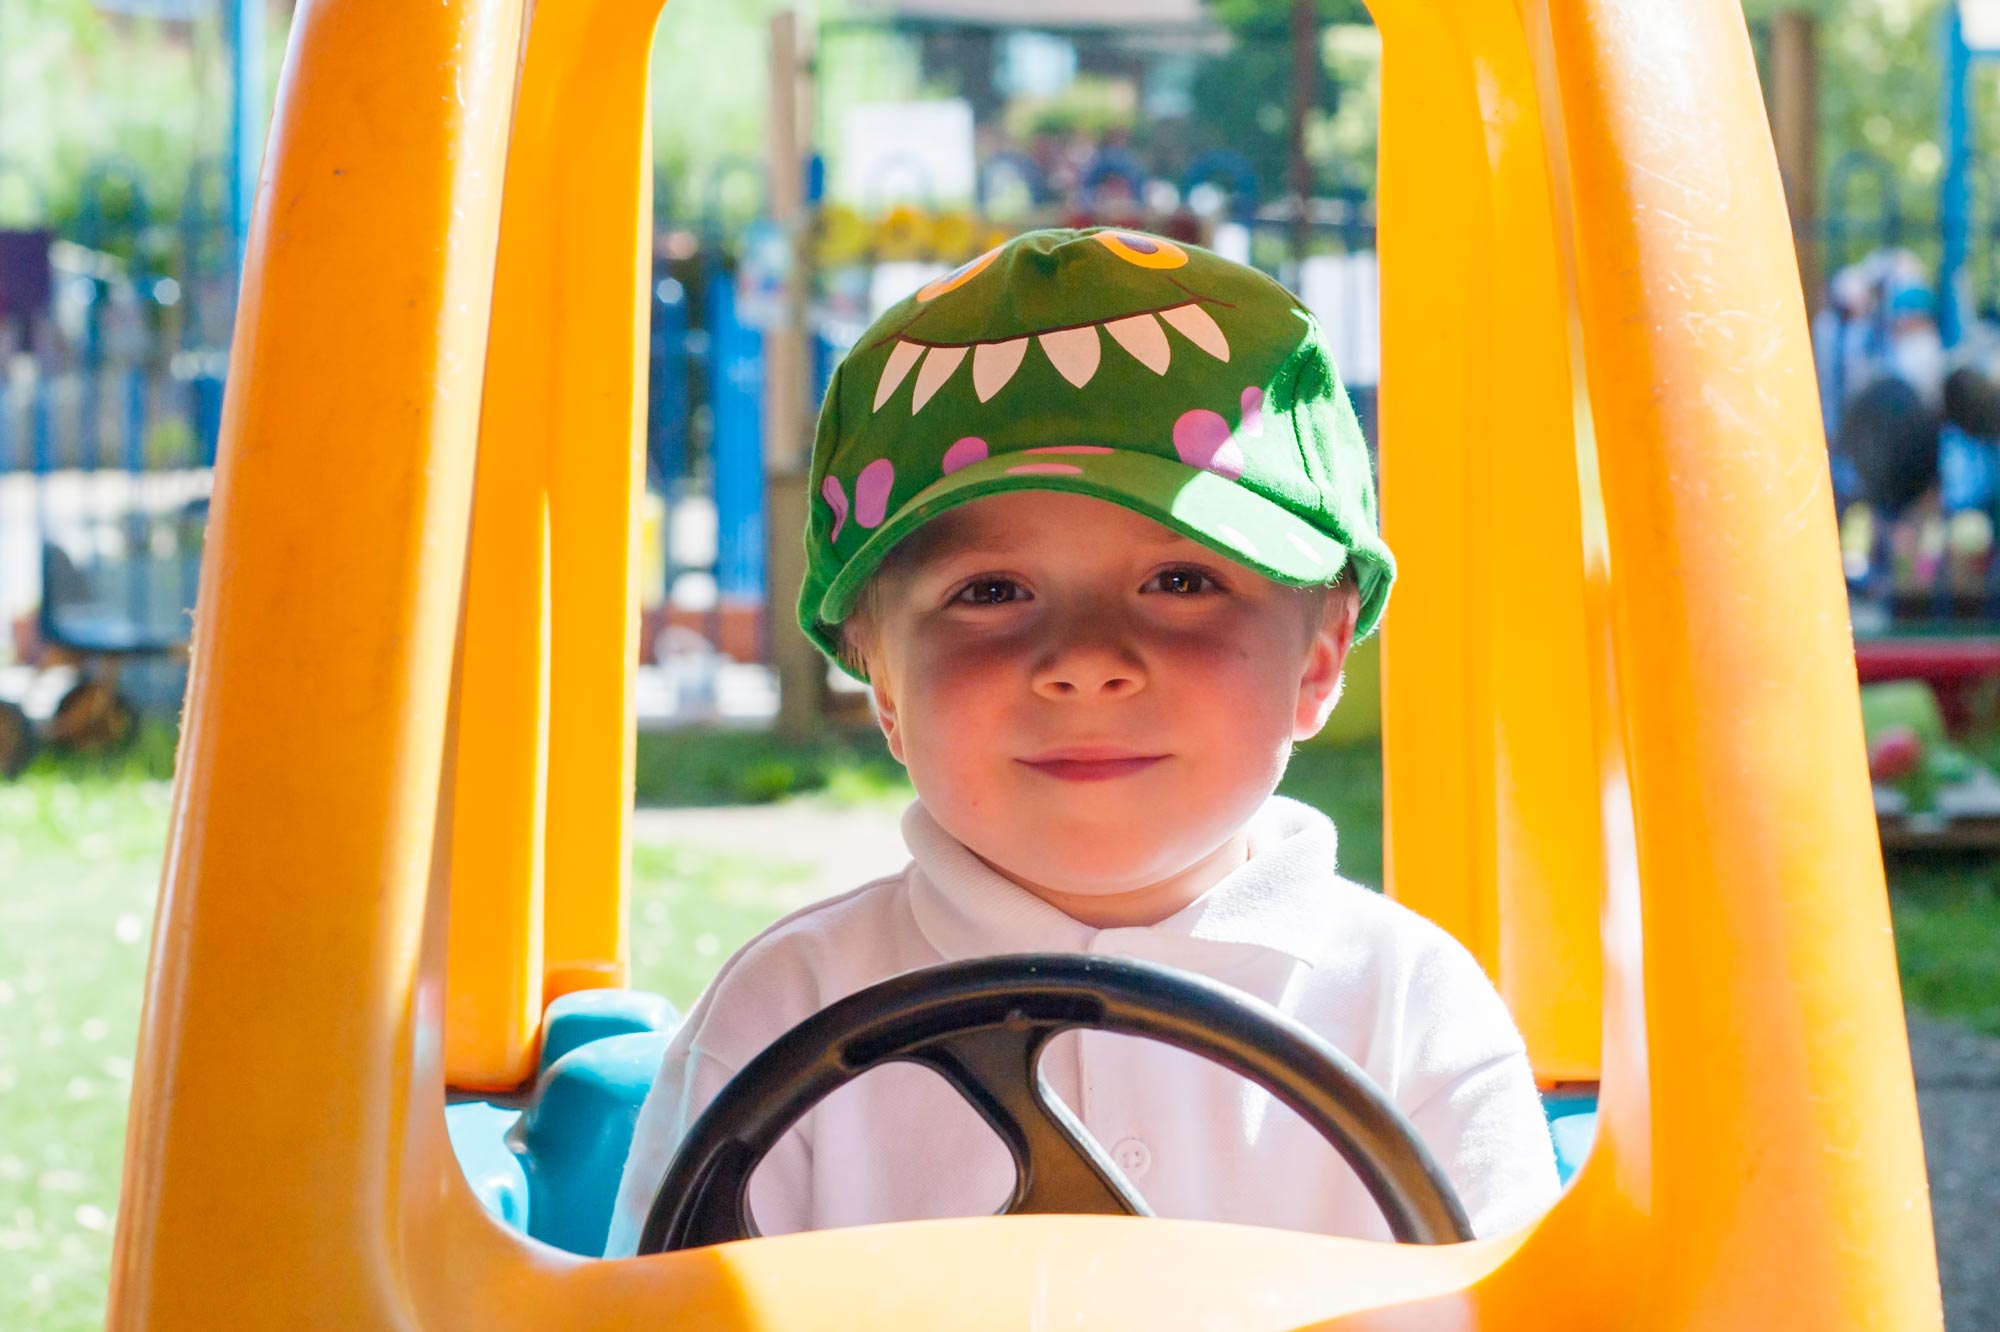 School child in a play car outdoors